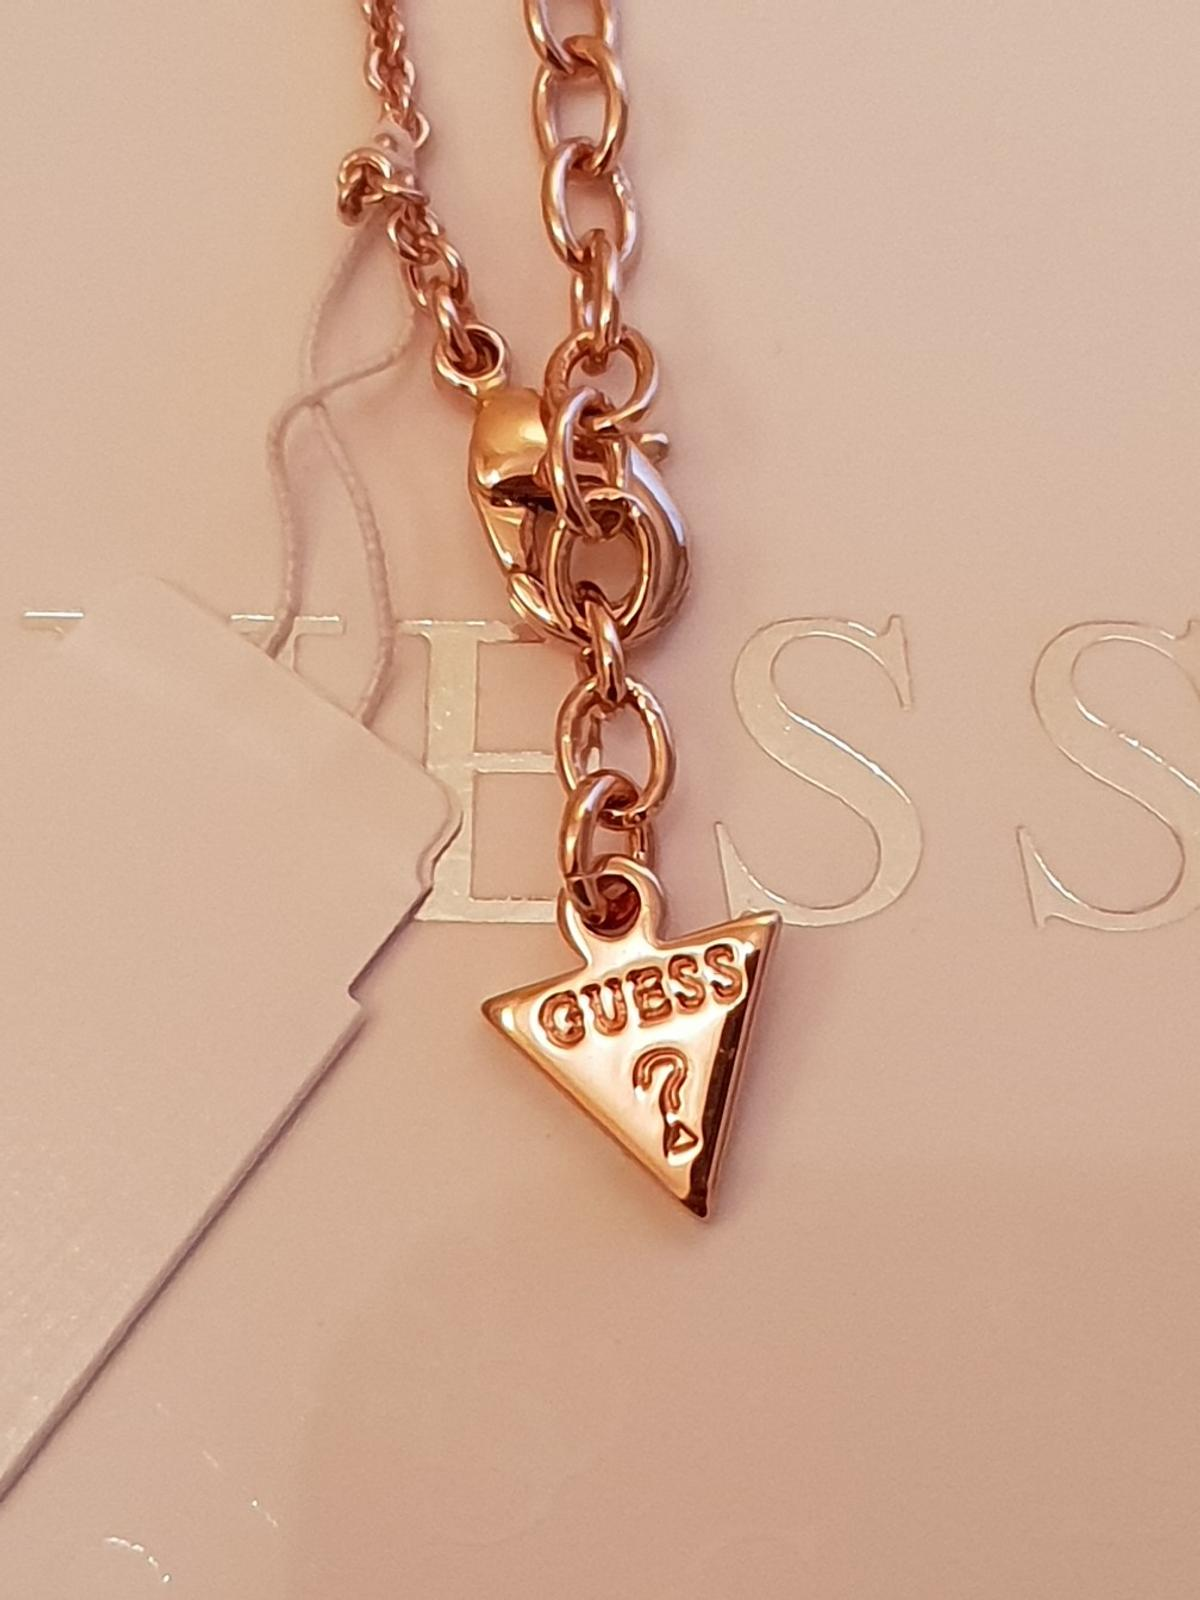 Guess Heart Devotion Rose Gold Necklace in CH49 Wirral für